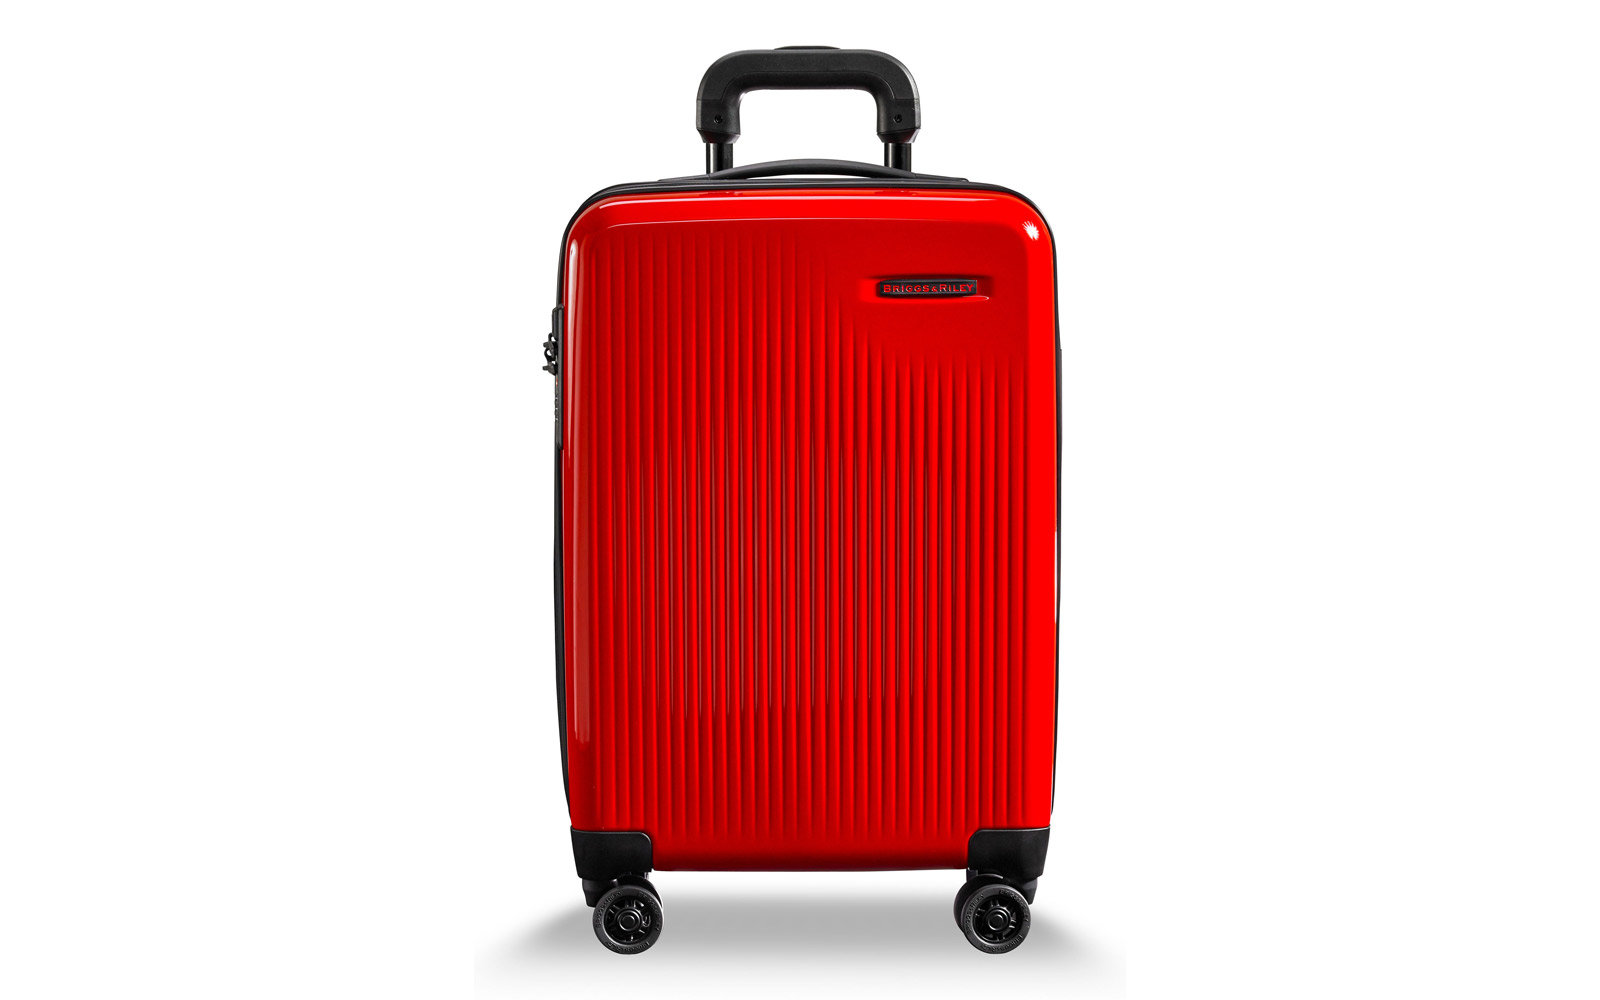 briggs and riley black friday luggage deals